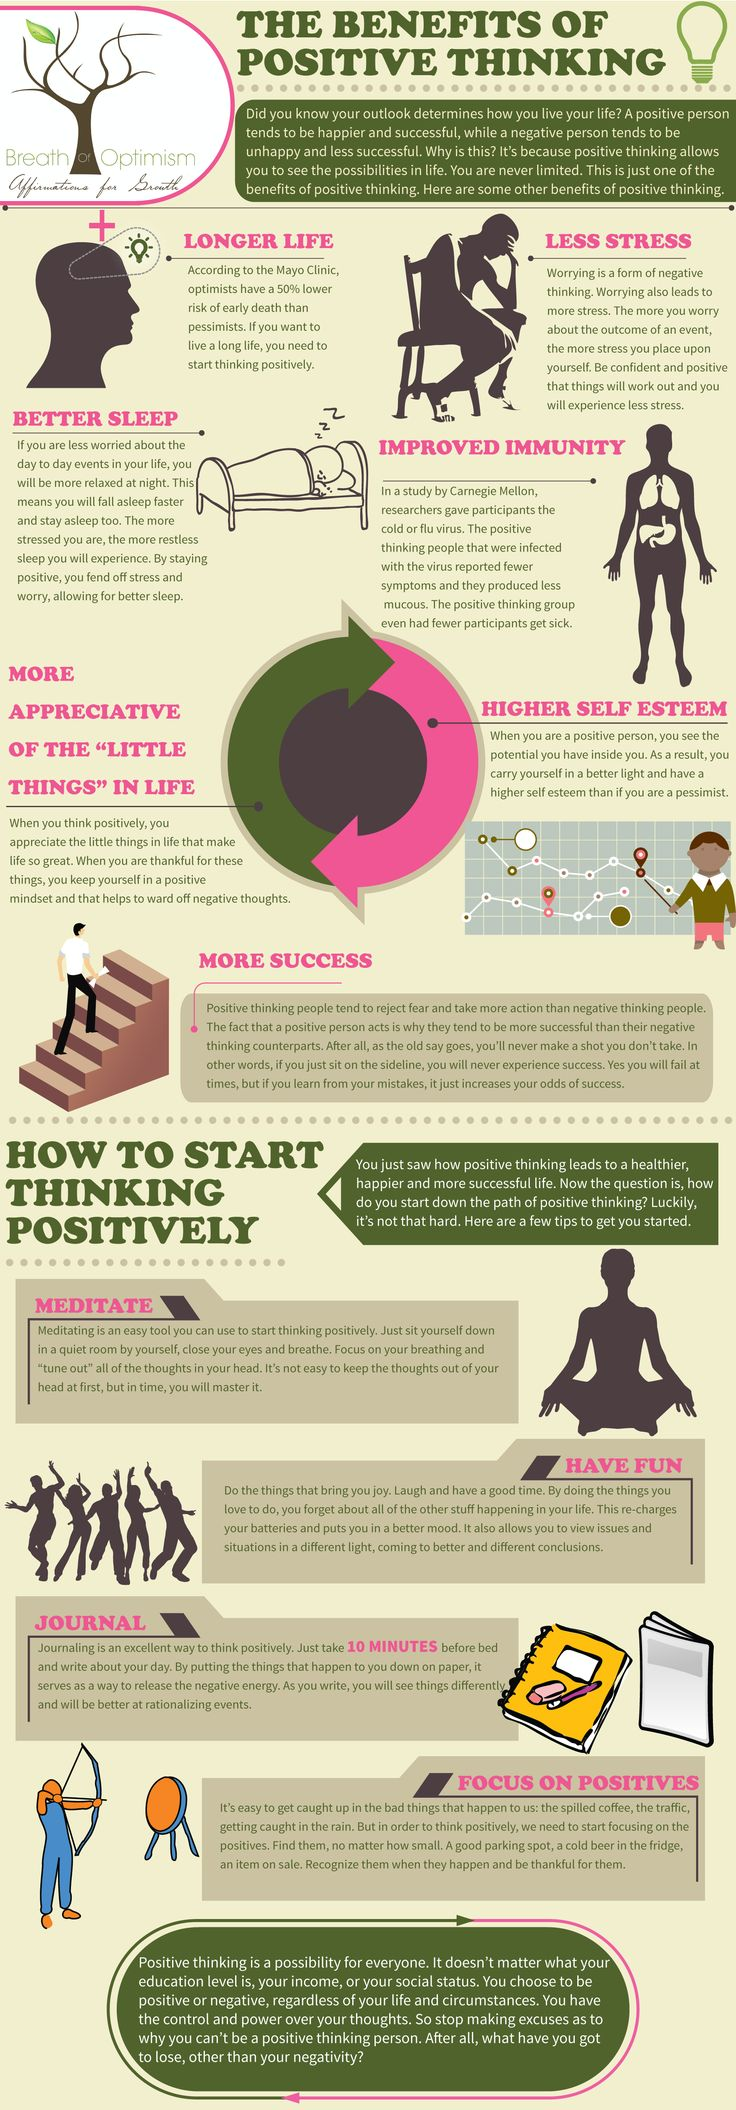 Do you know all of the benefits from positive thinking? Learn from this simple infographic